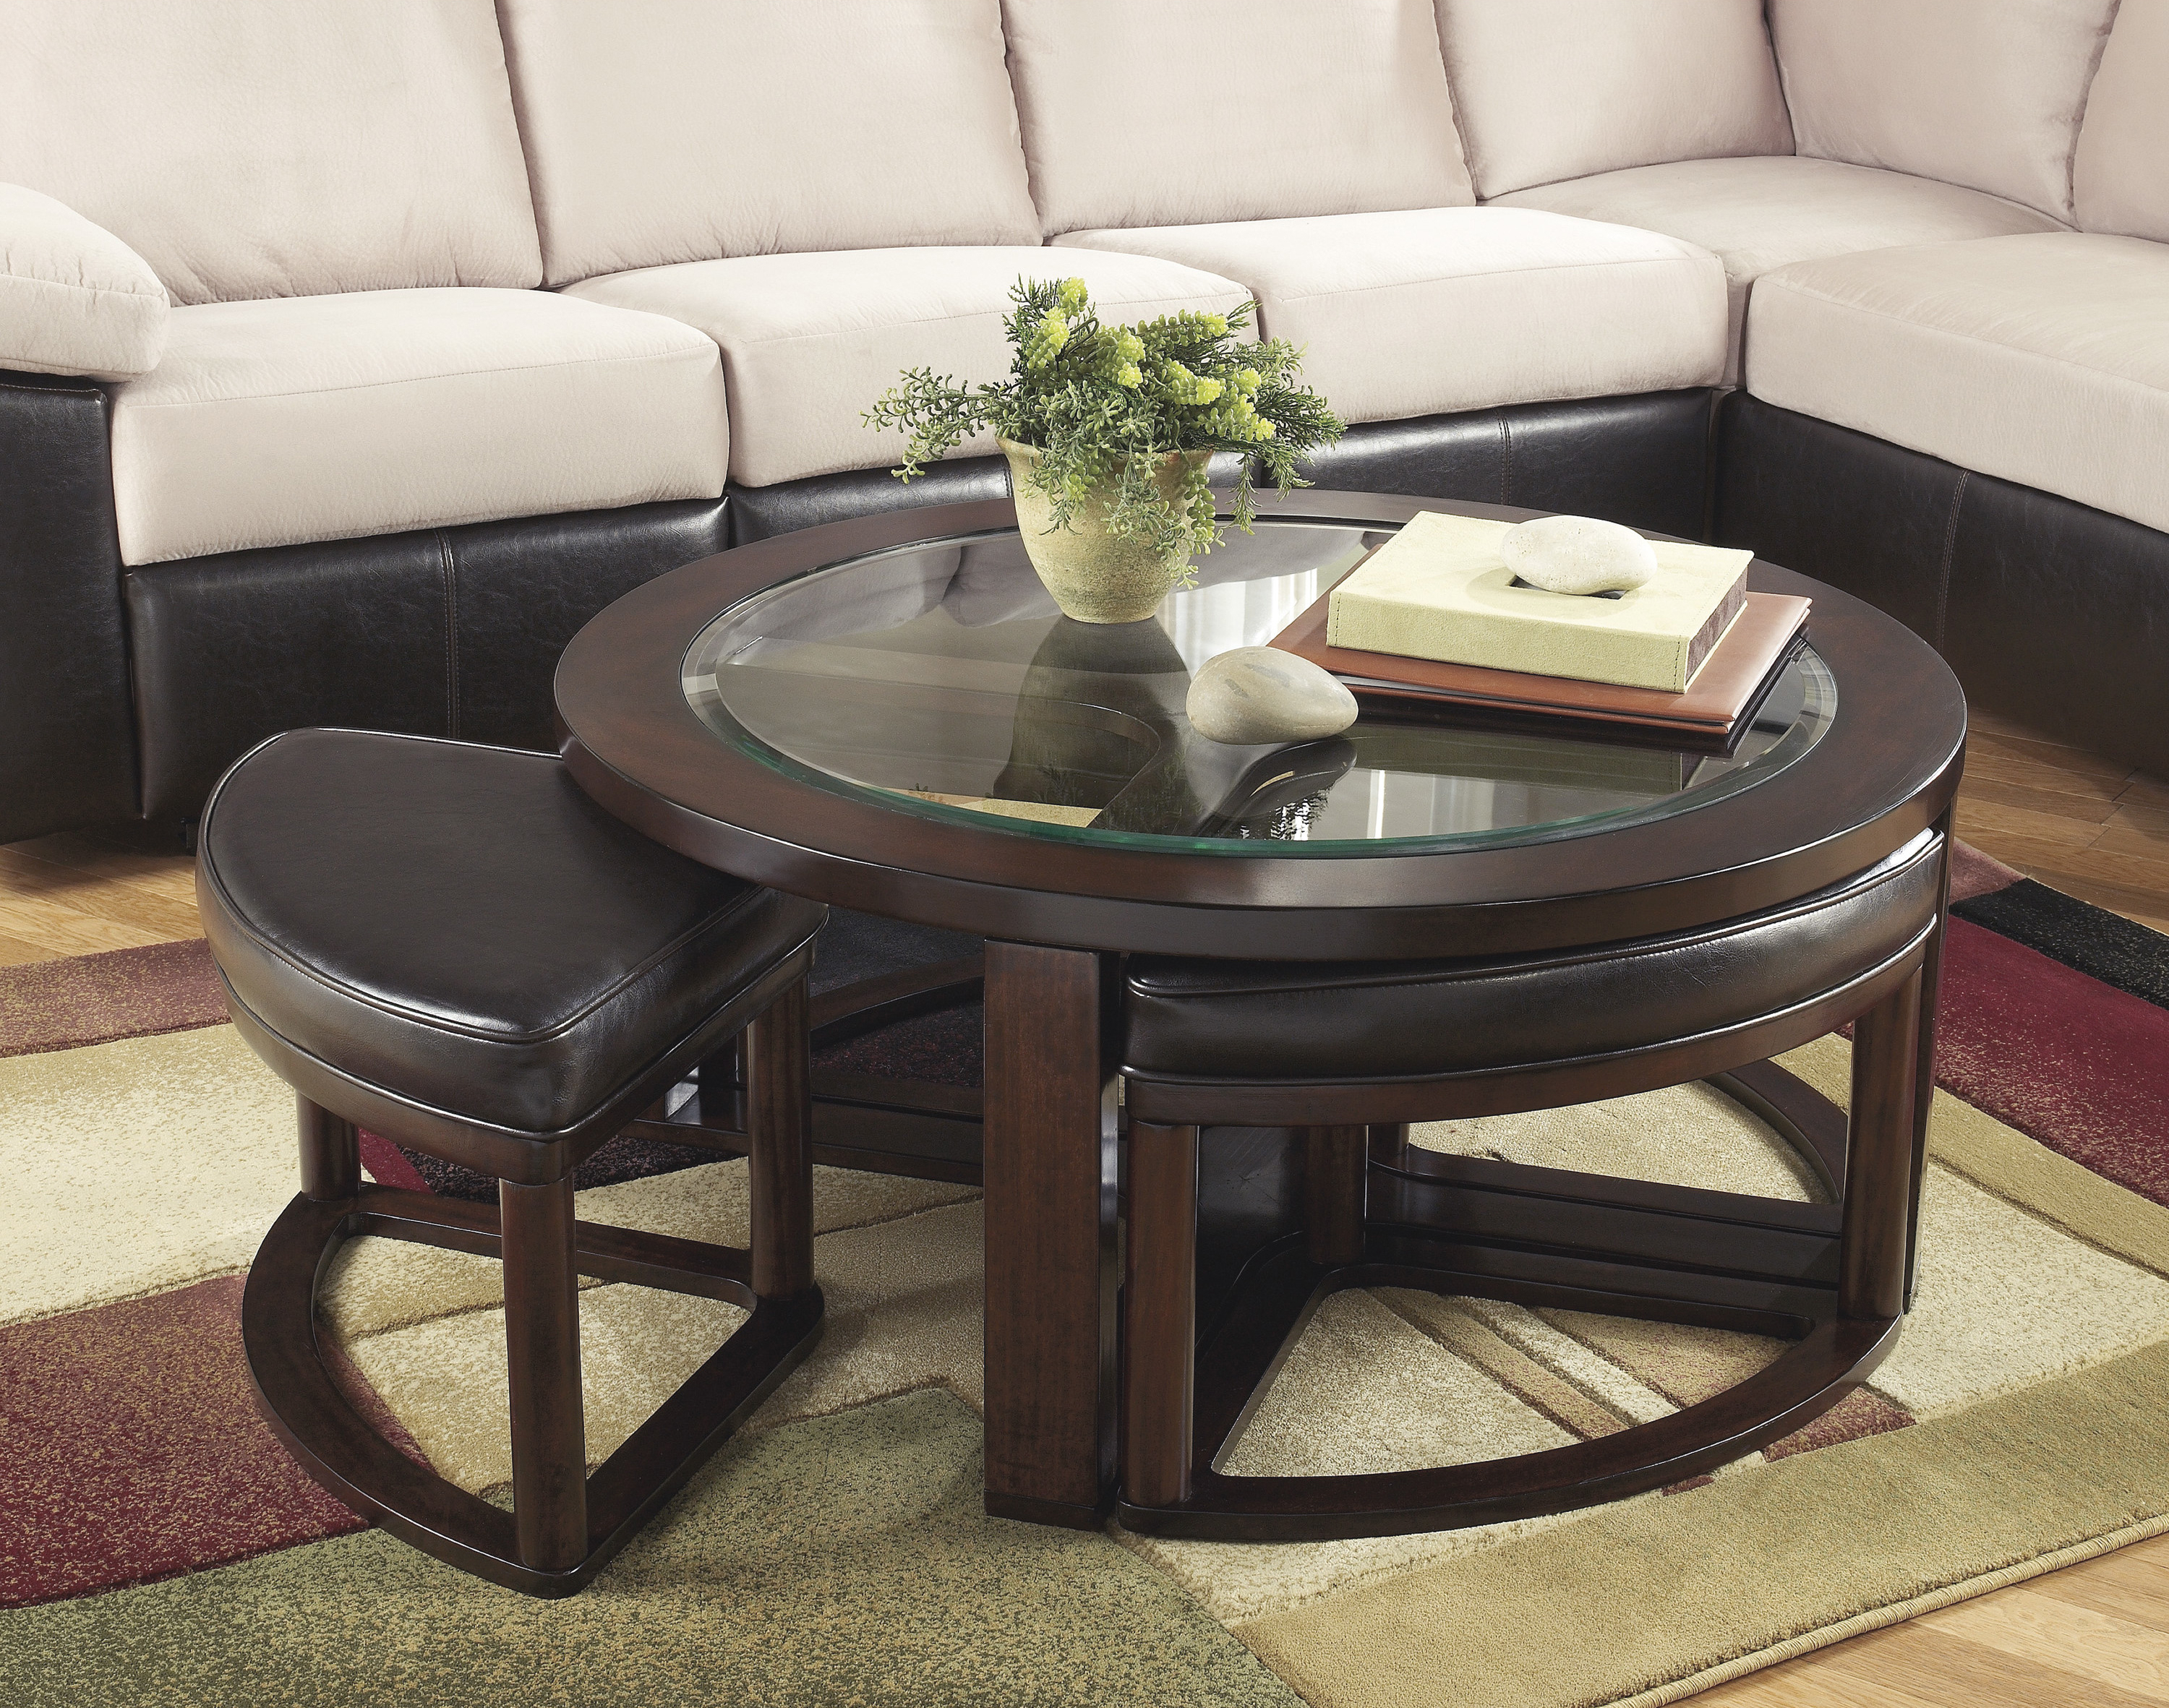 Trendy Unfinished Solid Parawood Bombay Tall Lift Top Coffee Tables Regarding The Best Coffee Tables For Small Spaces (View 13 of 20)